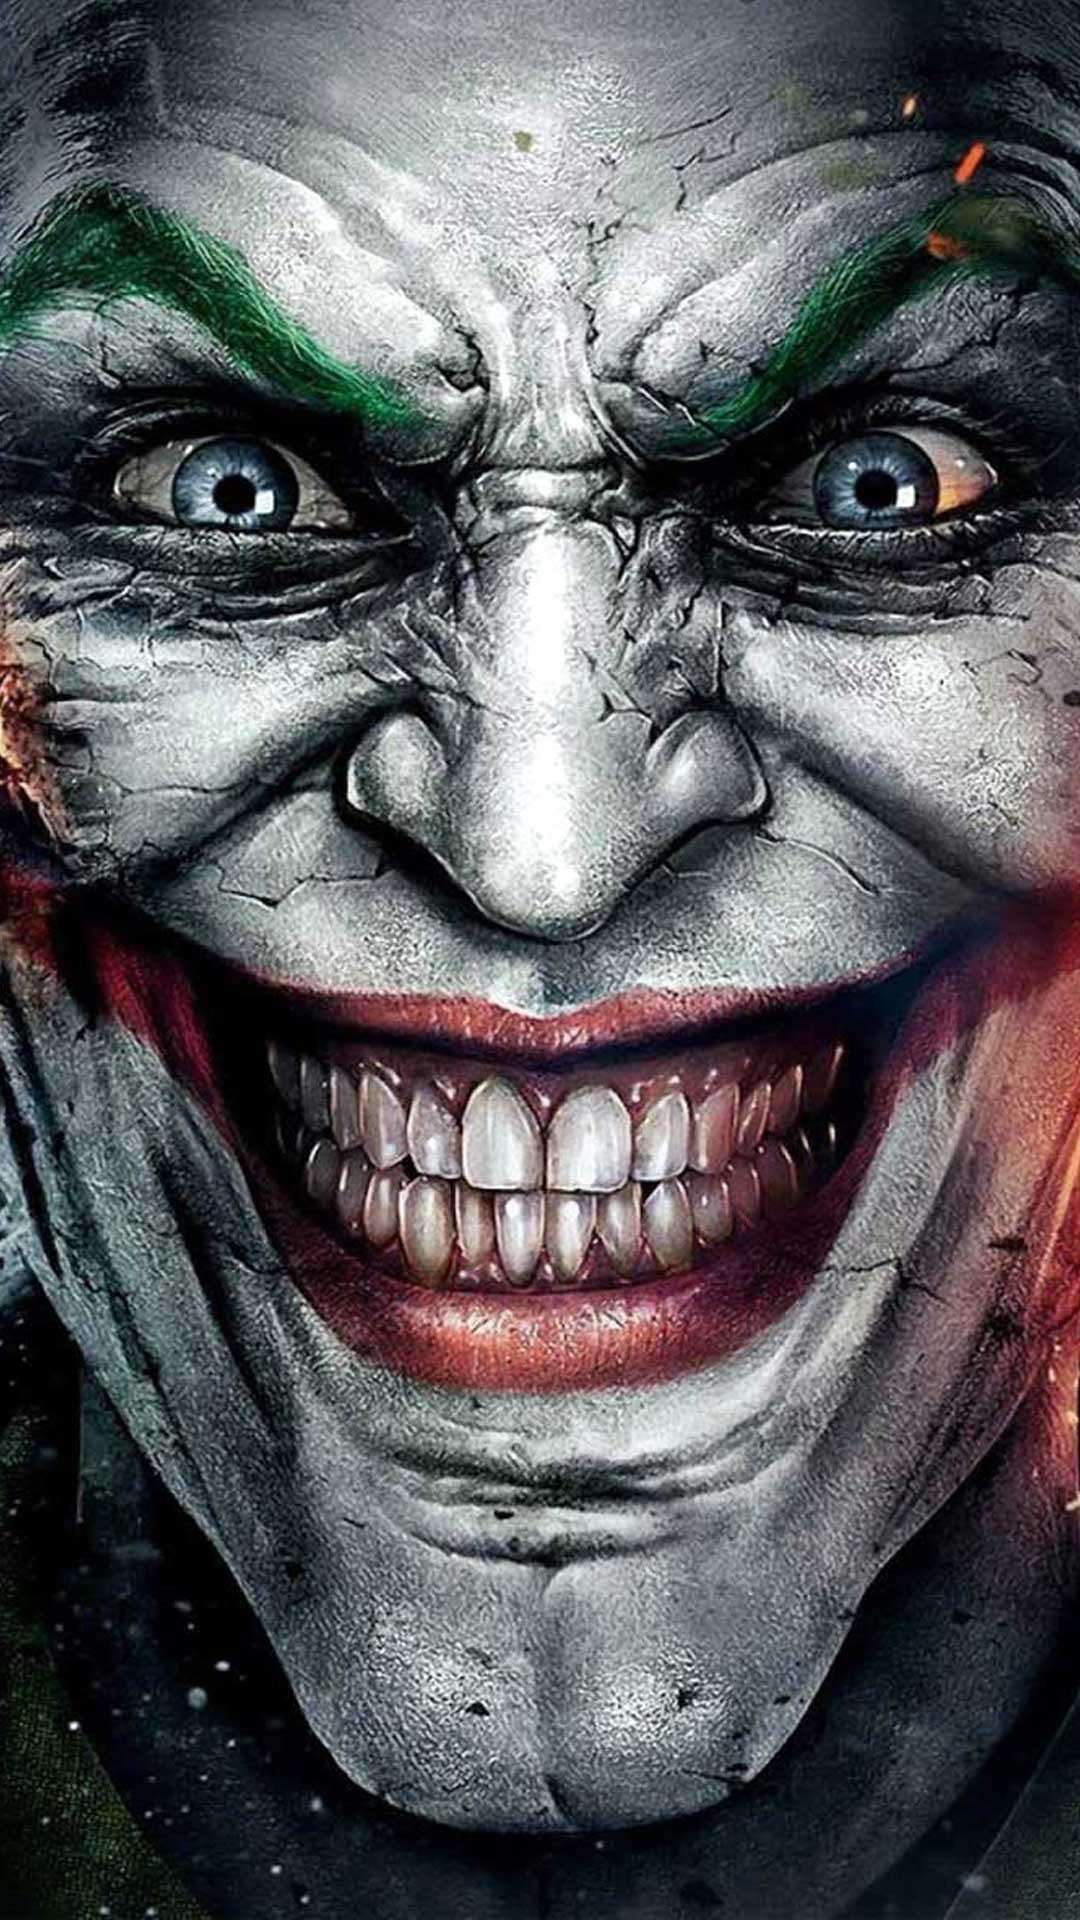 Hd Iphone Joker 52 Images Dodowallpaper